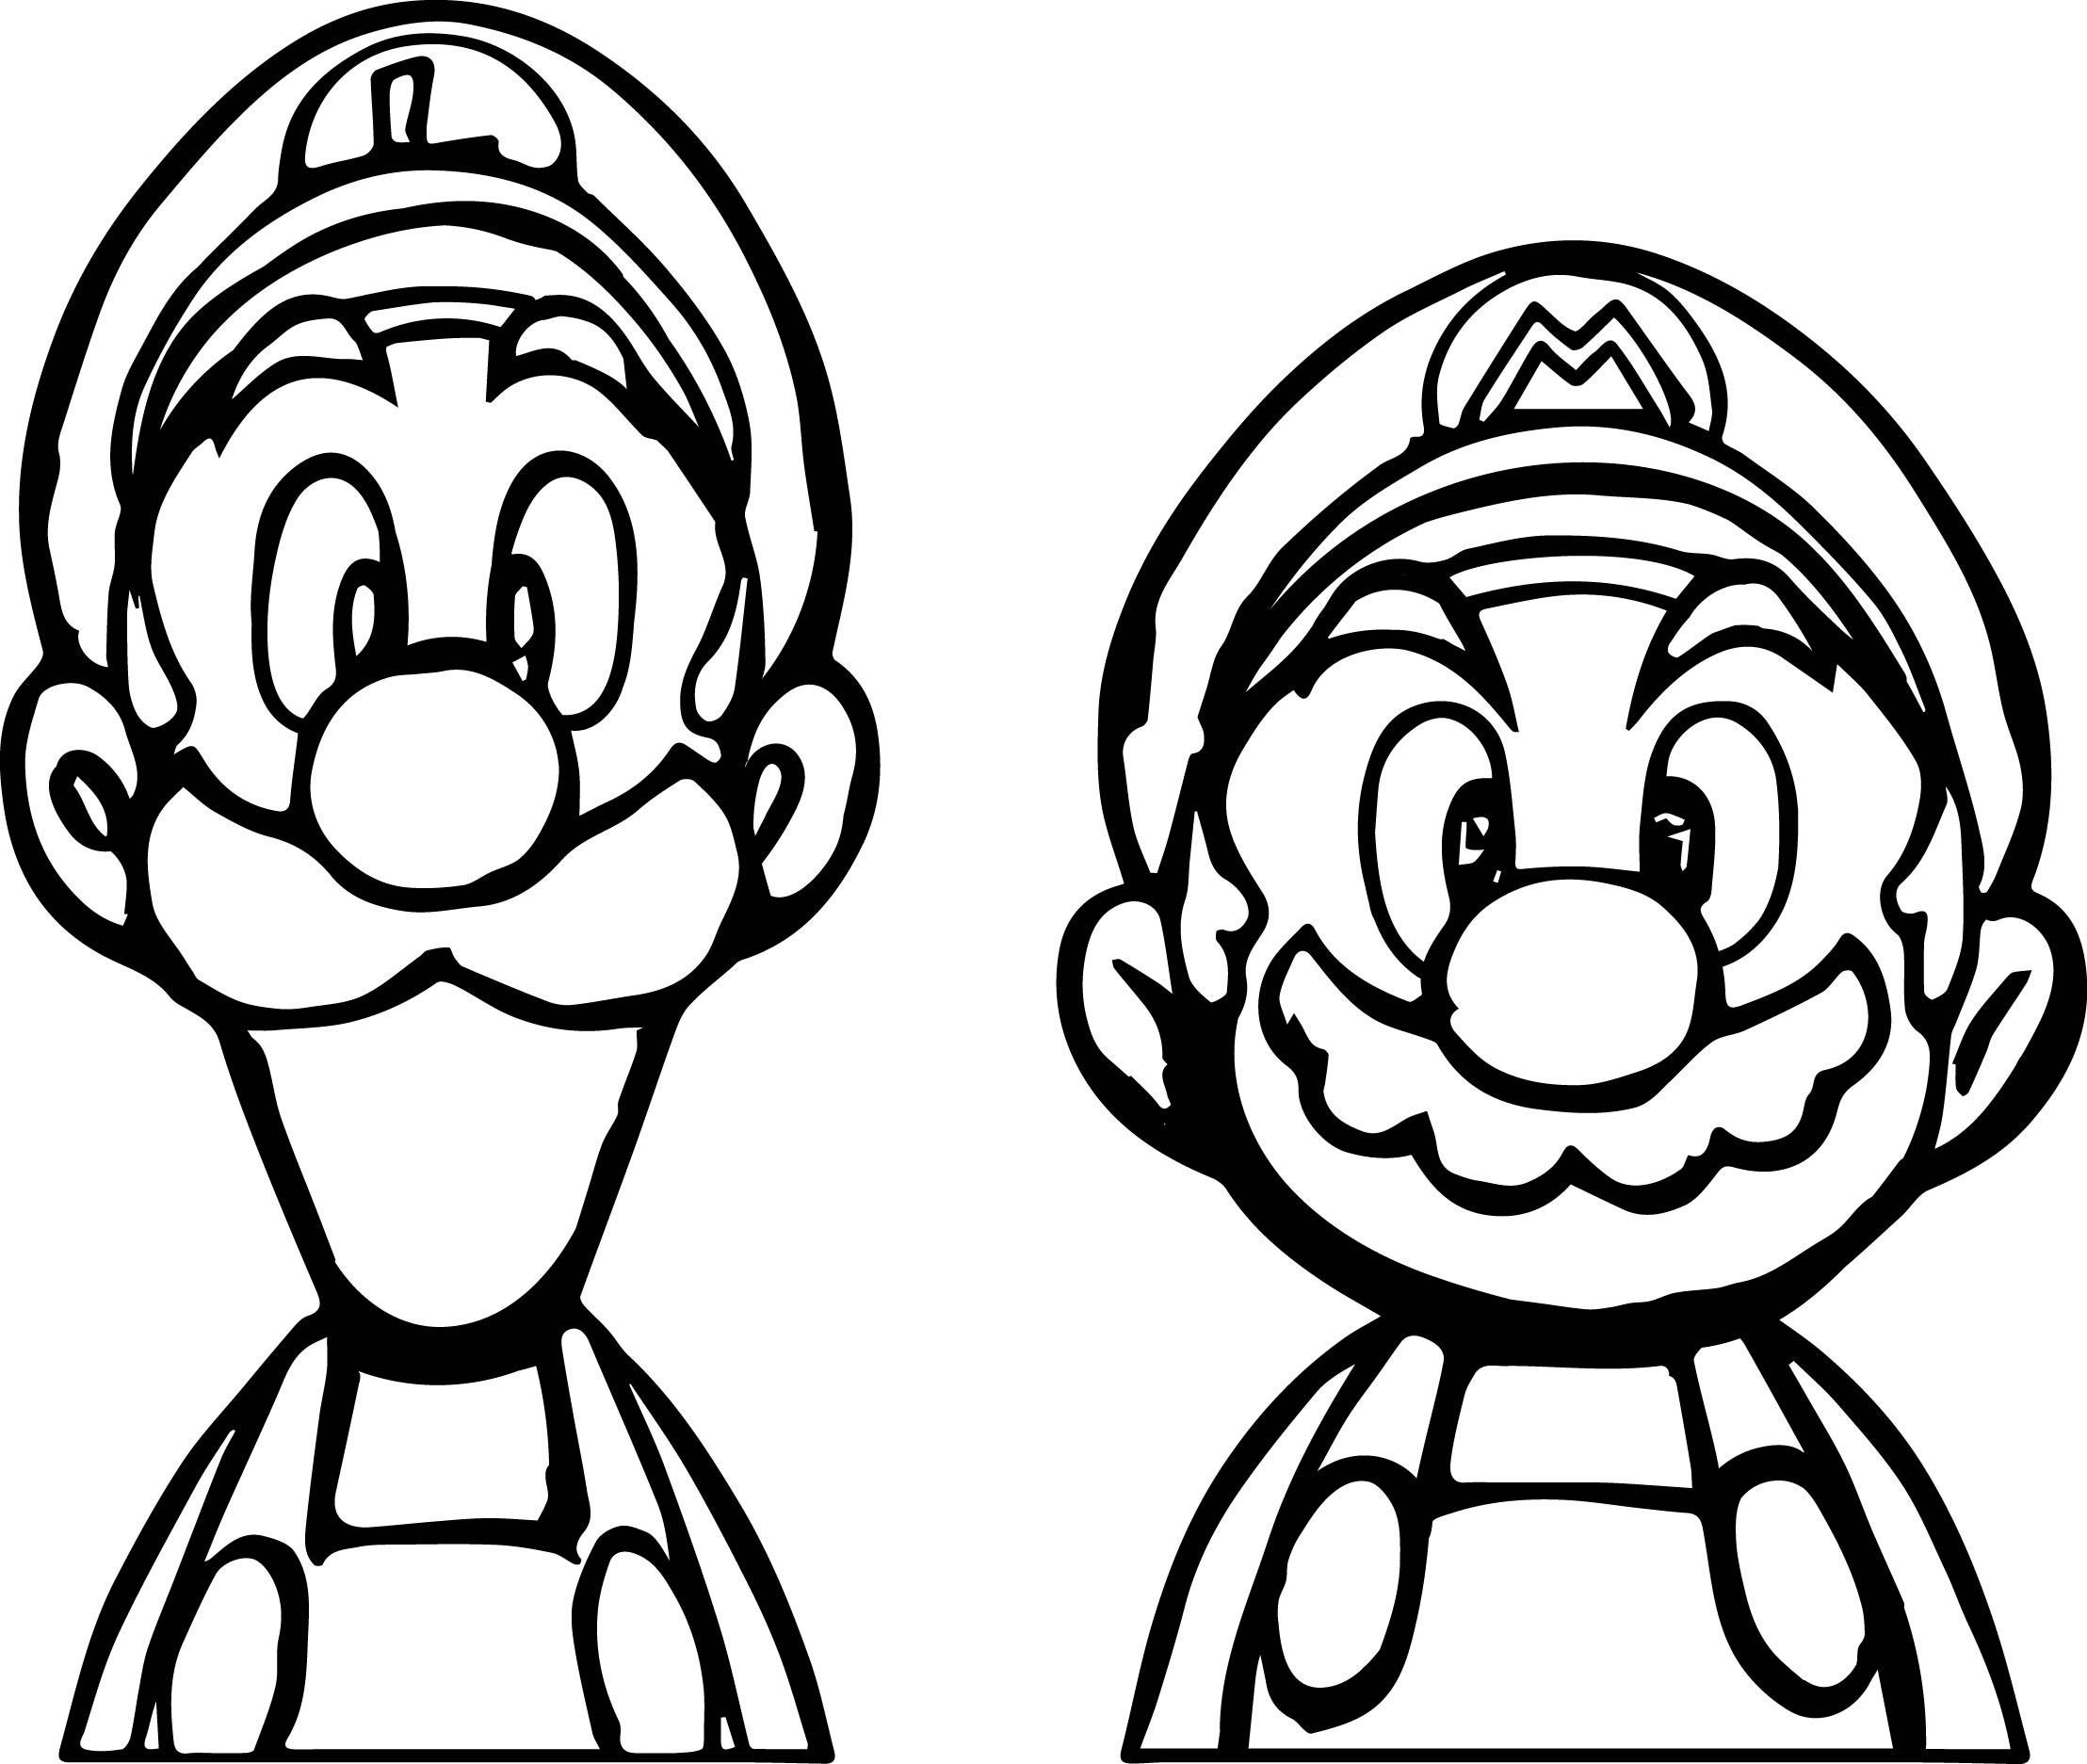 mario and luigi printable coloring pages paper mario and luigi coloring page free printable luigi mario coloring pages and printable